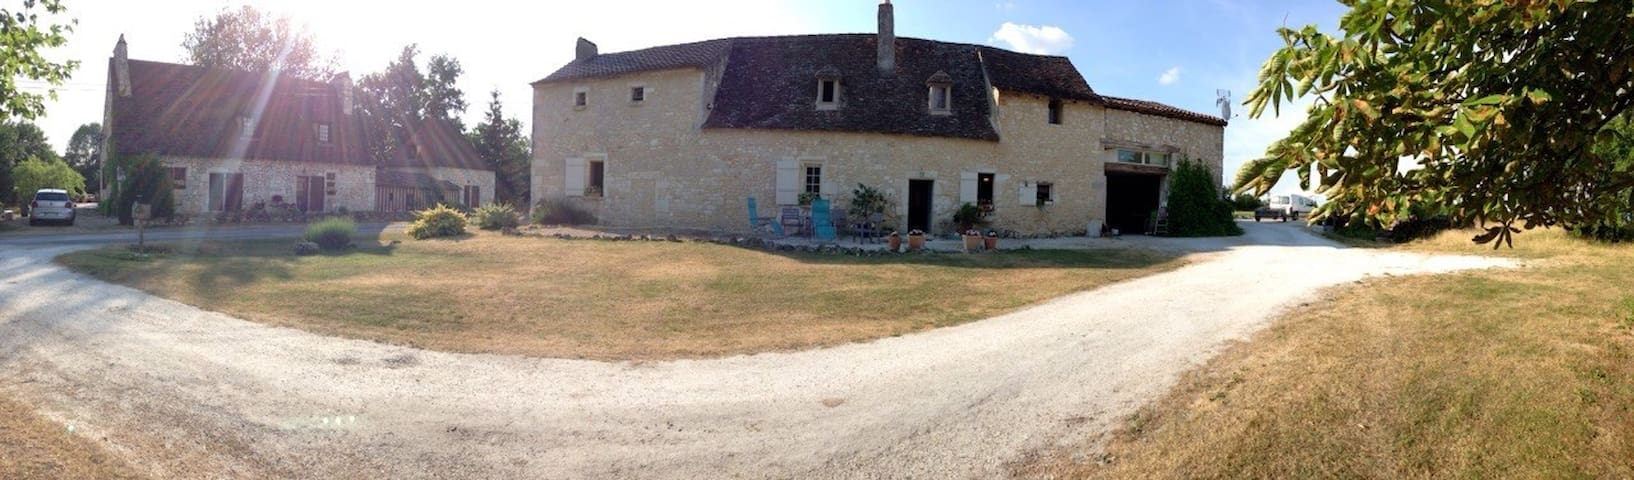 STUDIO NEAR ISSIGEAC, DORDOGNE - Plaisance - Apartment